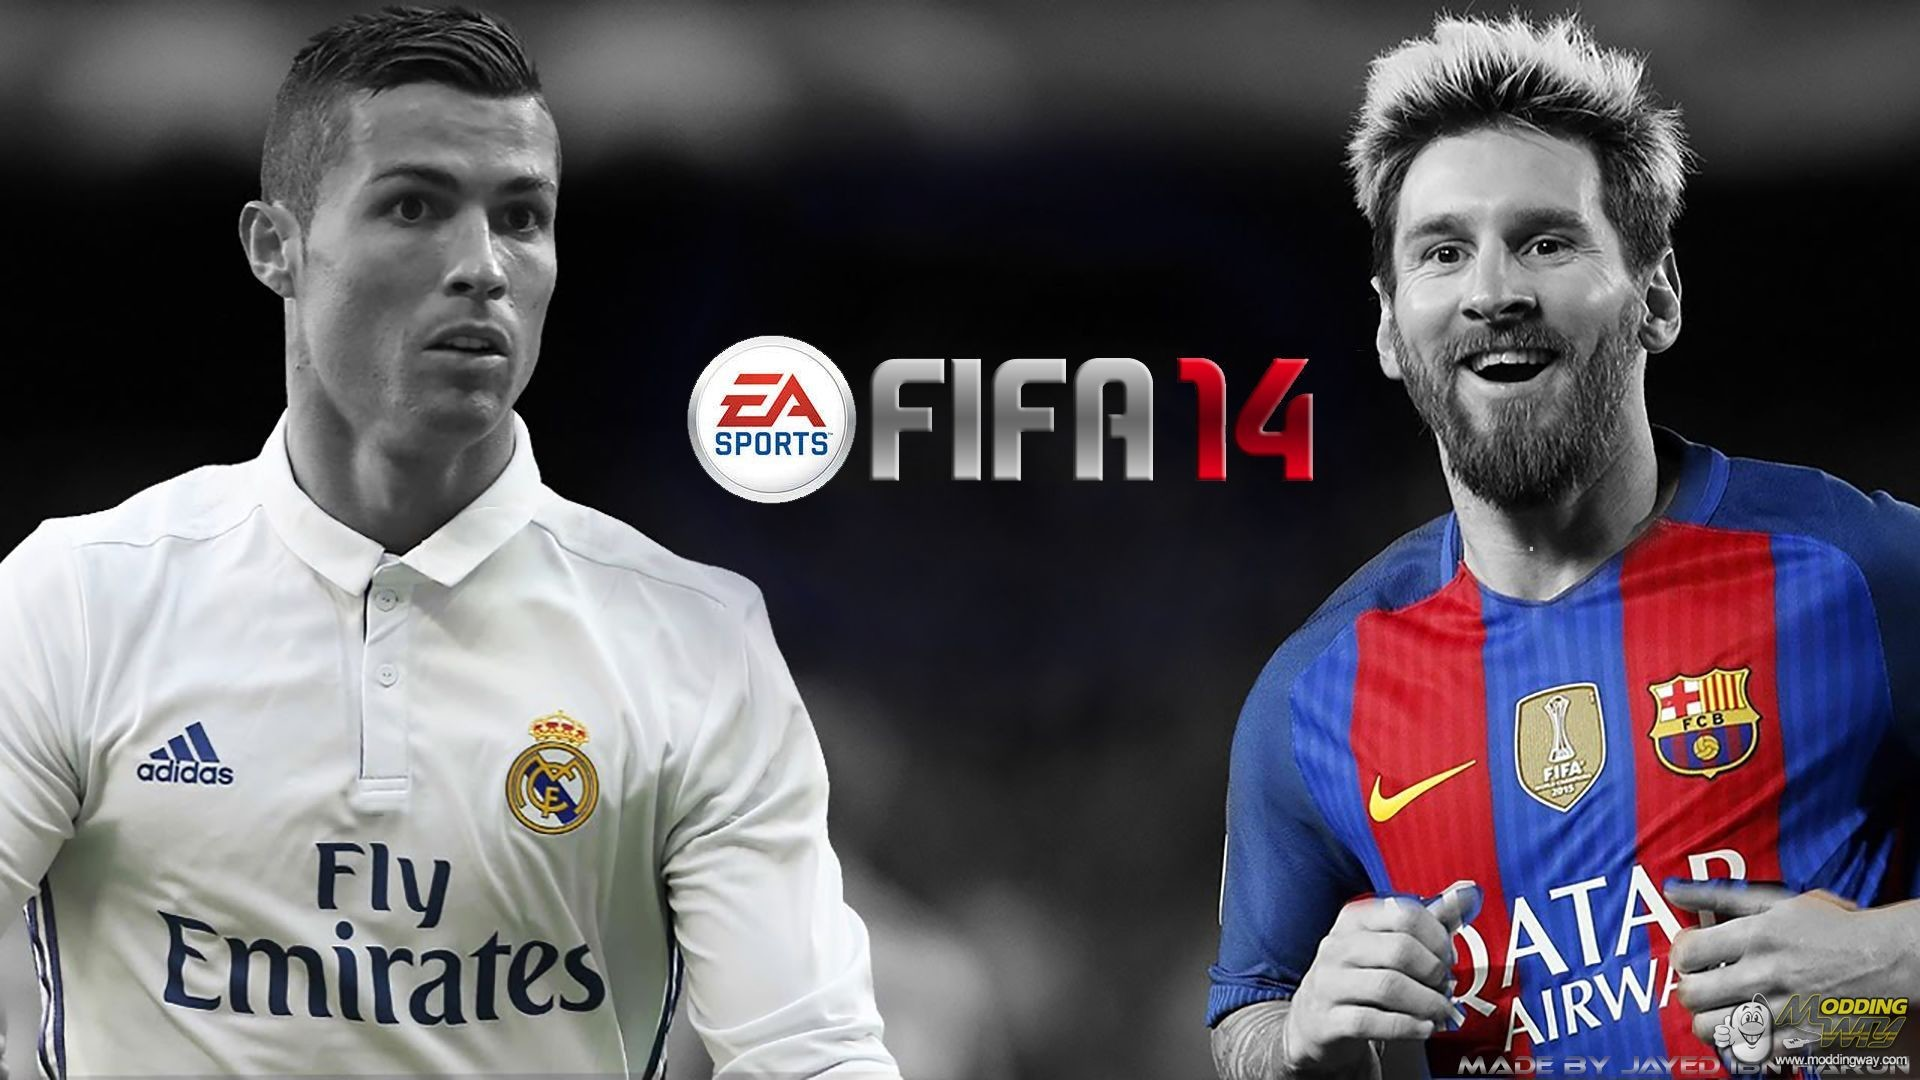 1920x1080 FIFA 14 / Graphic Mods / New Black,White And Colourful Stylish Messi vs  Ronaldo Splash For FIFA 14 - FIFA 14